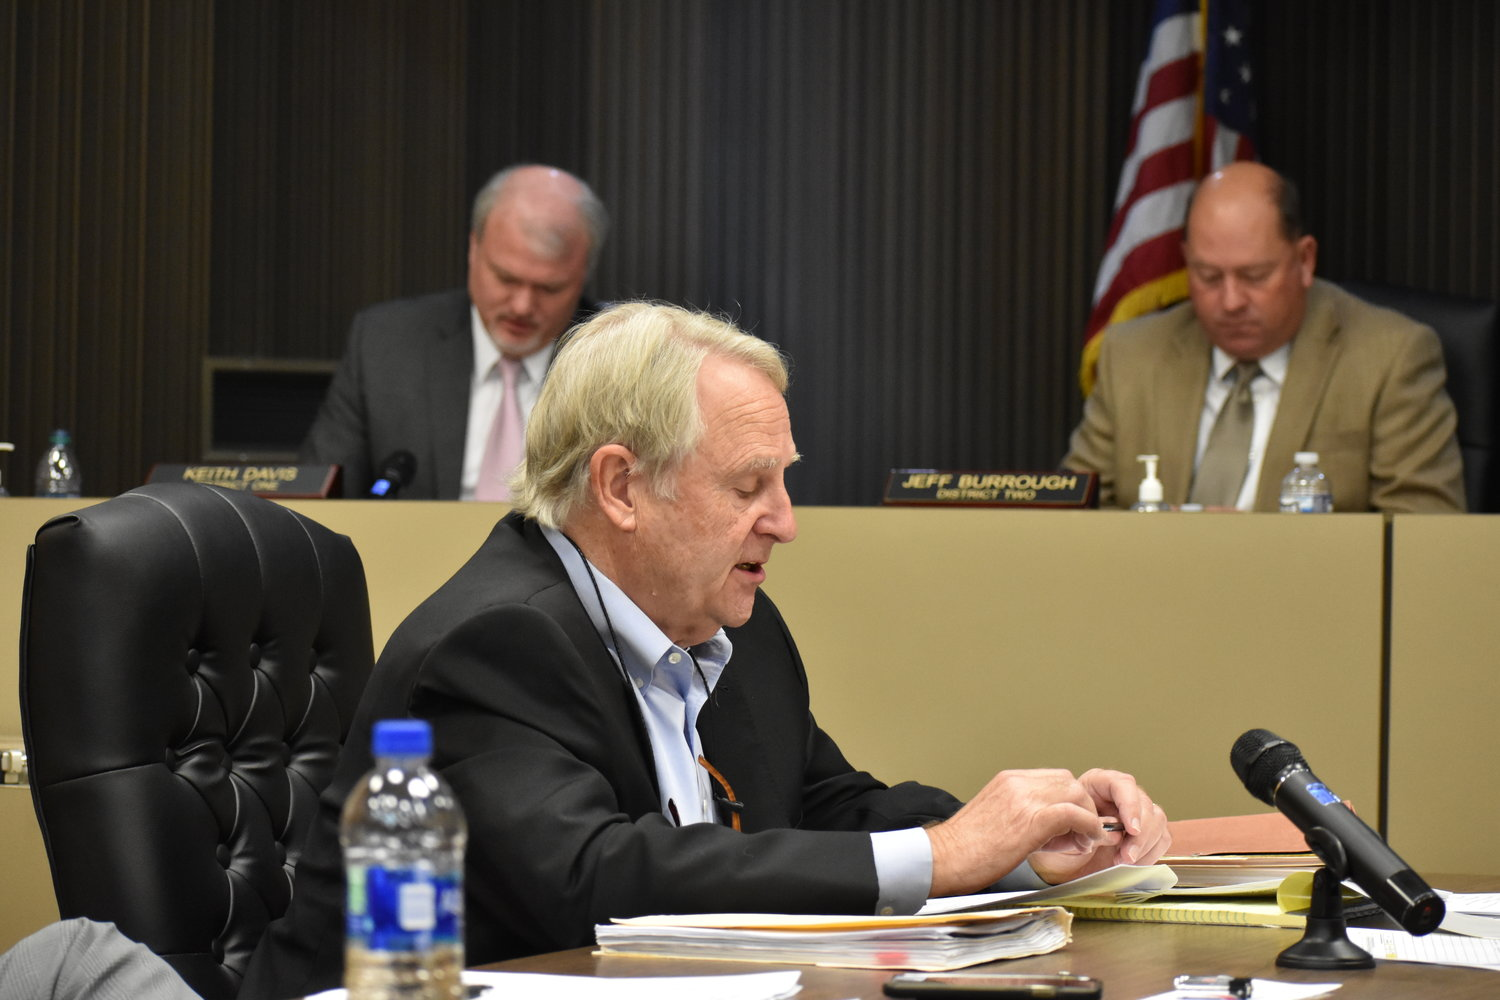 Eddie Jackson, the county attorney for the Walker County Commission, reads a letter at Monday''s meeting detailing how Republic Services will close the Pineview Landfill in 2025. Commissioners Keith Davis, left, and Jeff Burrough follow along.